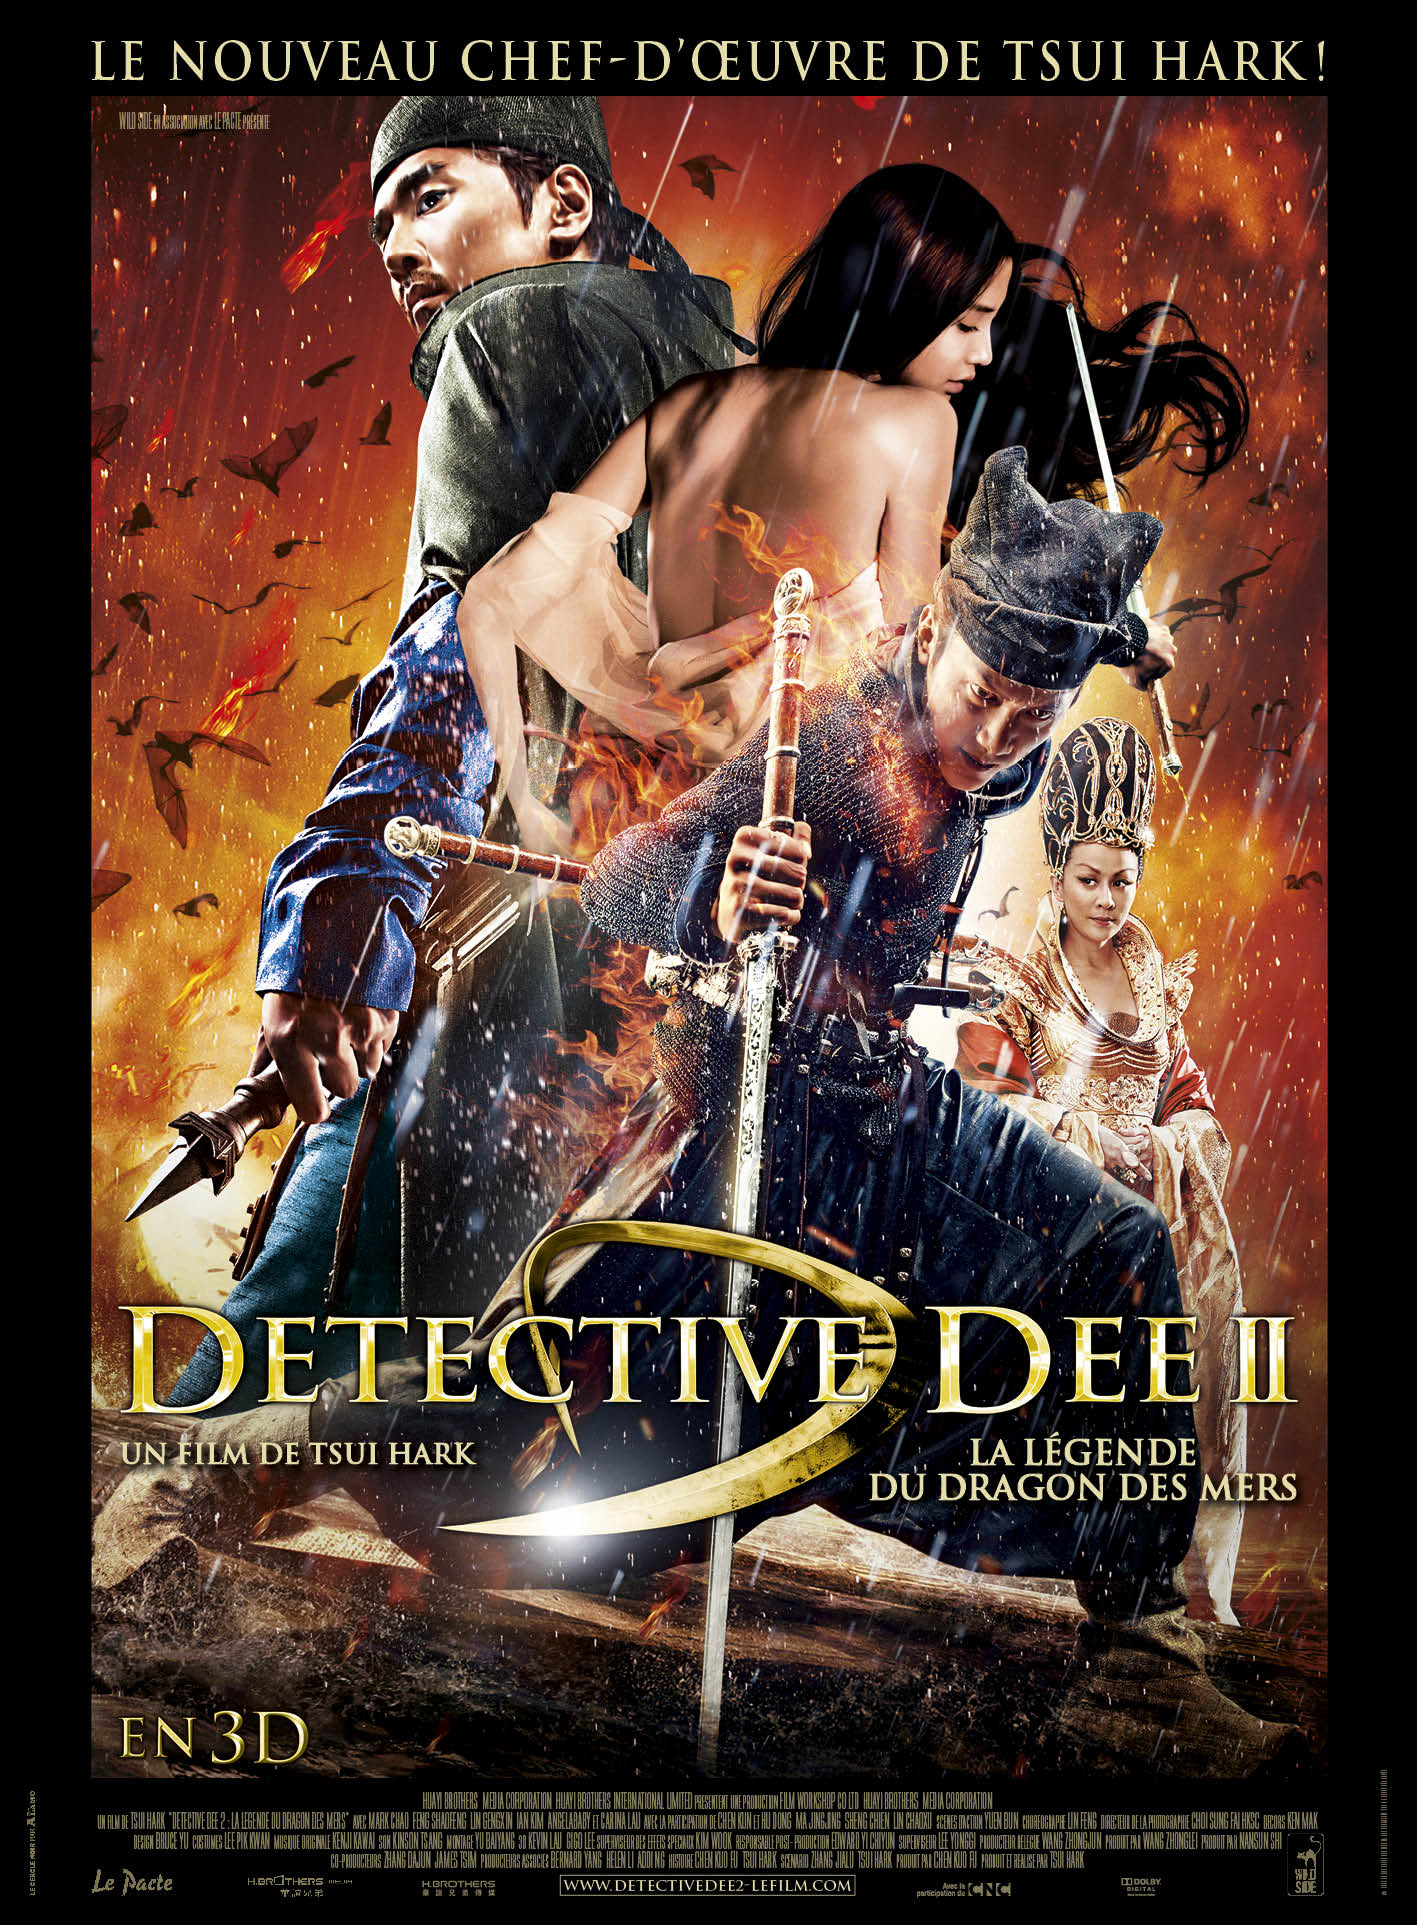 Detective dee 2 dvd blu ray for Les arts martiaux chinois